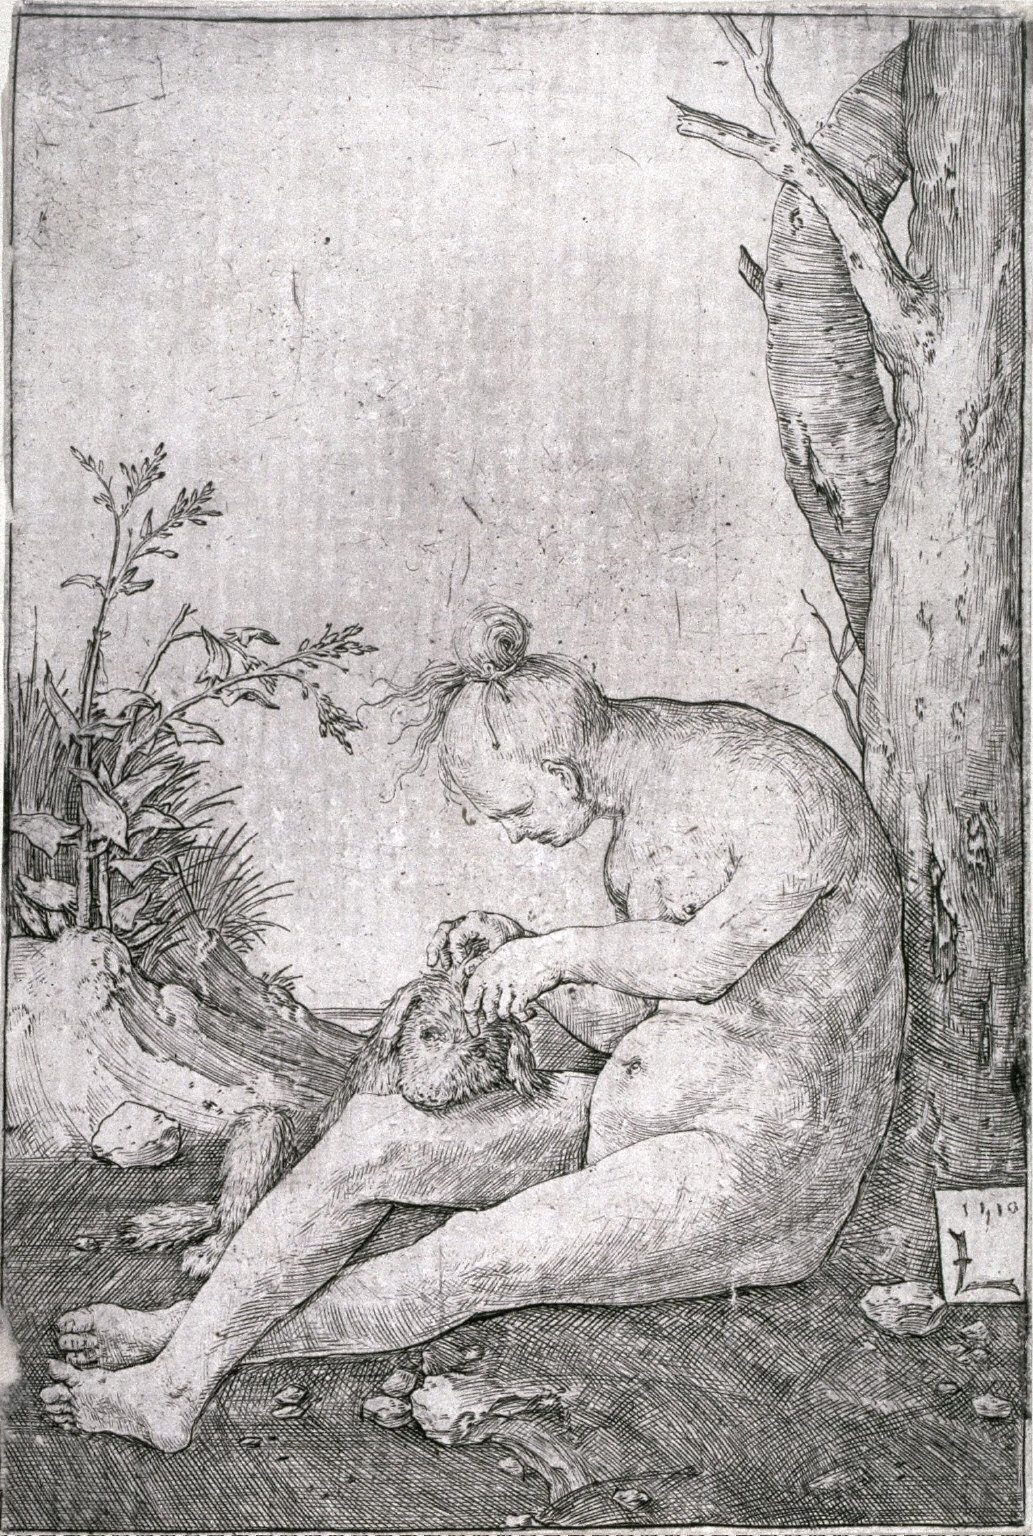 The Woman with the Dog